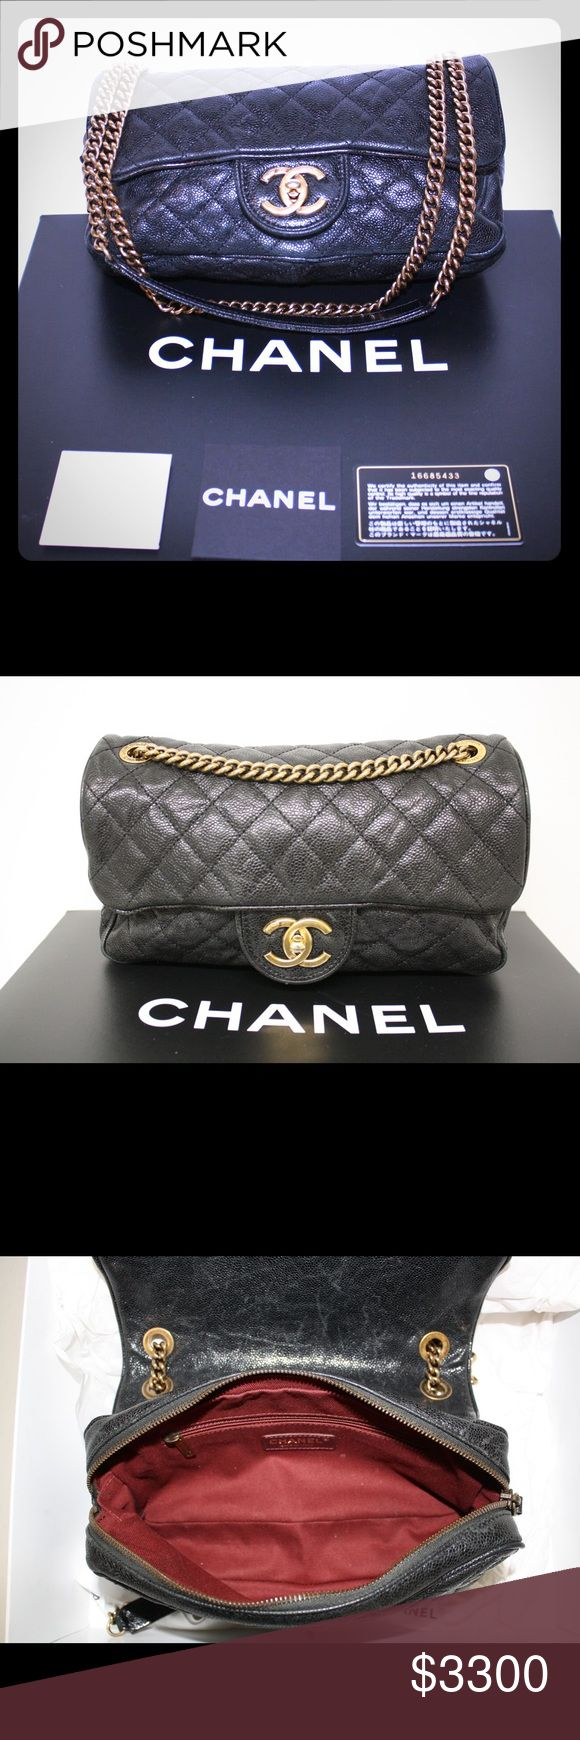 """💯Authentic Chanel Black Bag 💯 authentic Chanel bag w/authenticity card. Comes in box w/shopping bag and includes duster bag for purse! Used condition: light rubbing/minimal wear on piping/trim of bag. Wear on closure of bag. I can take more pictures. Still in fantastic condition with no significant stains inside of bag. Strap is moveable: wear as shoulder bag (12"""") or cross body (18"""") Rare black pebble leather with rustic gold hardware & dark red lining. Bought in 2013 from Neiman Marcus…"""